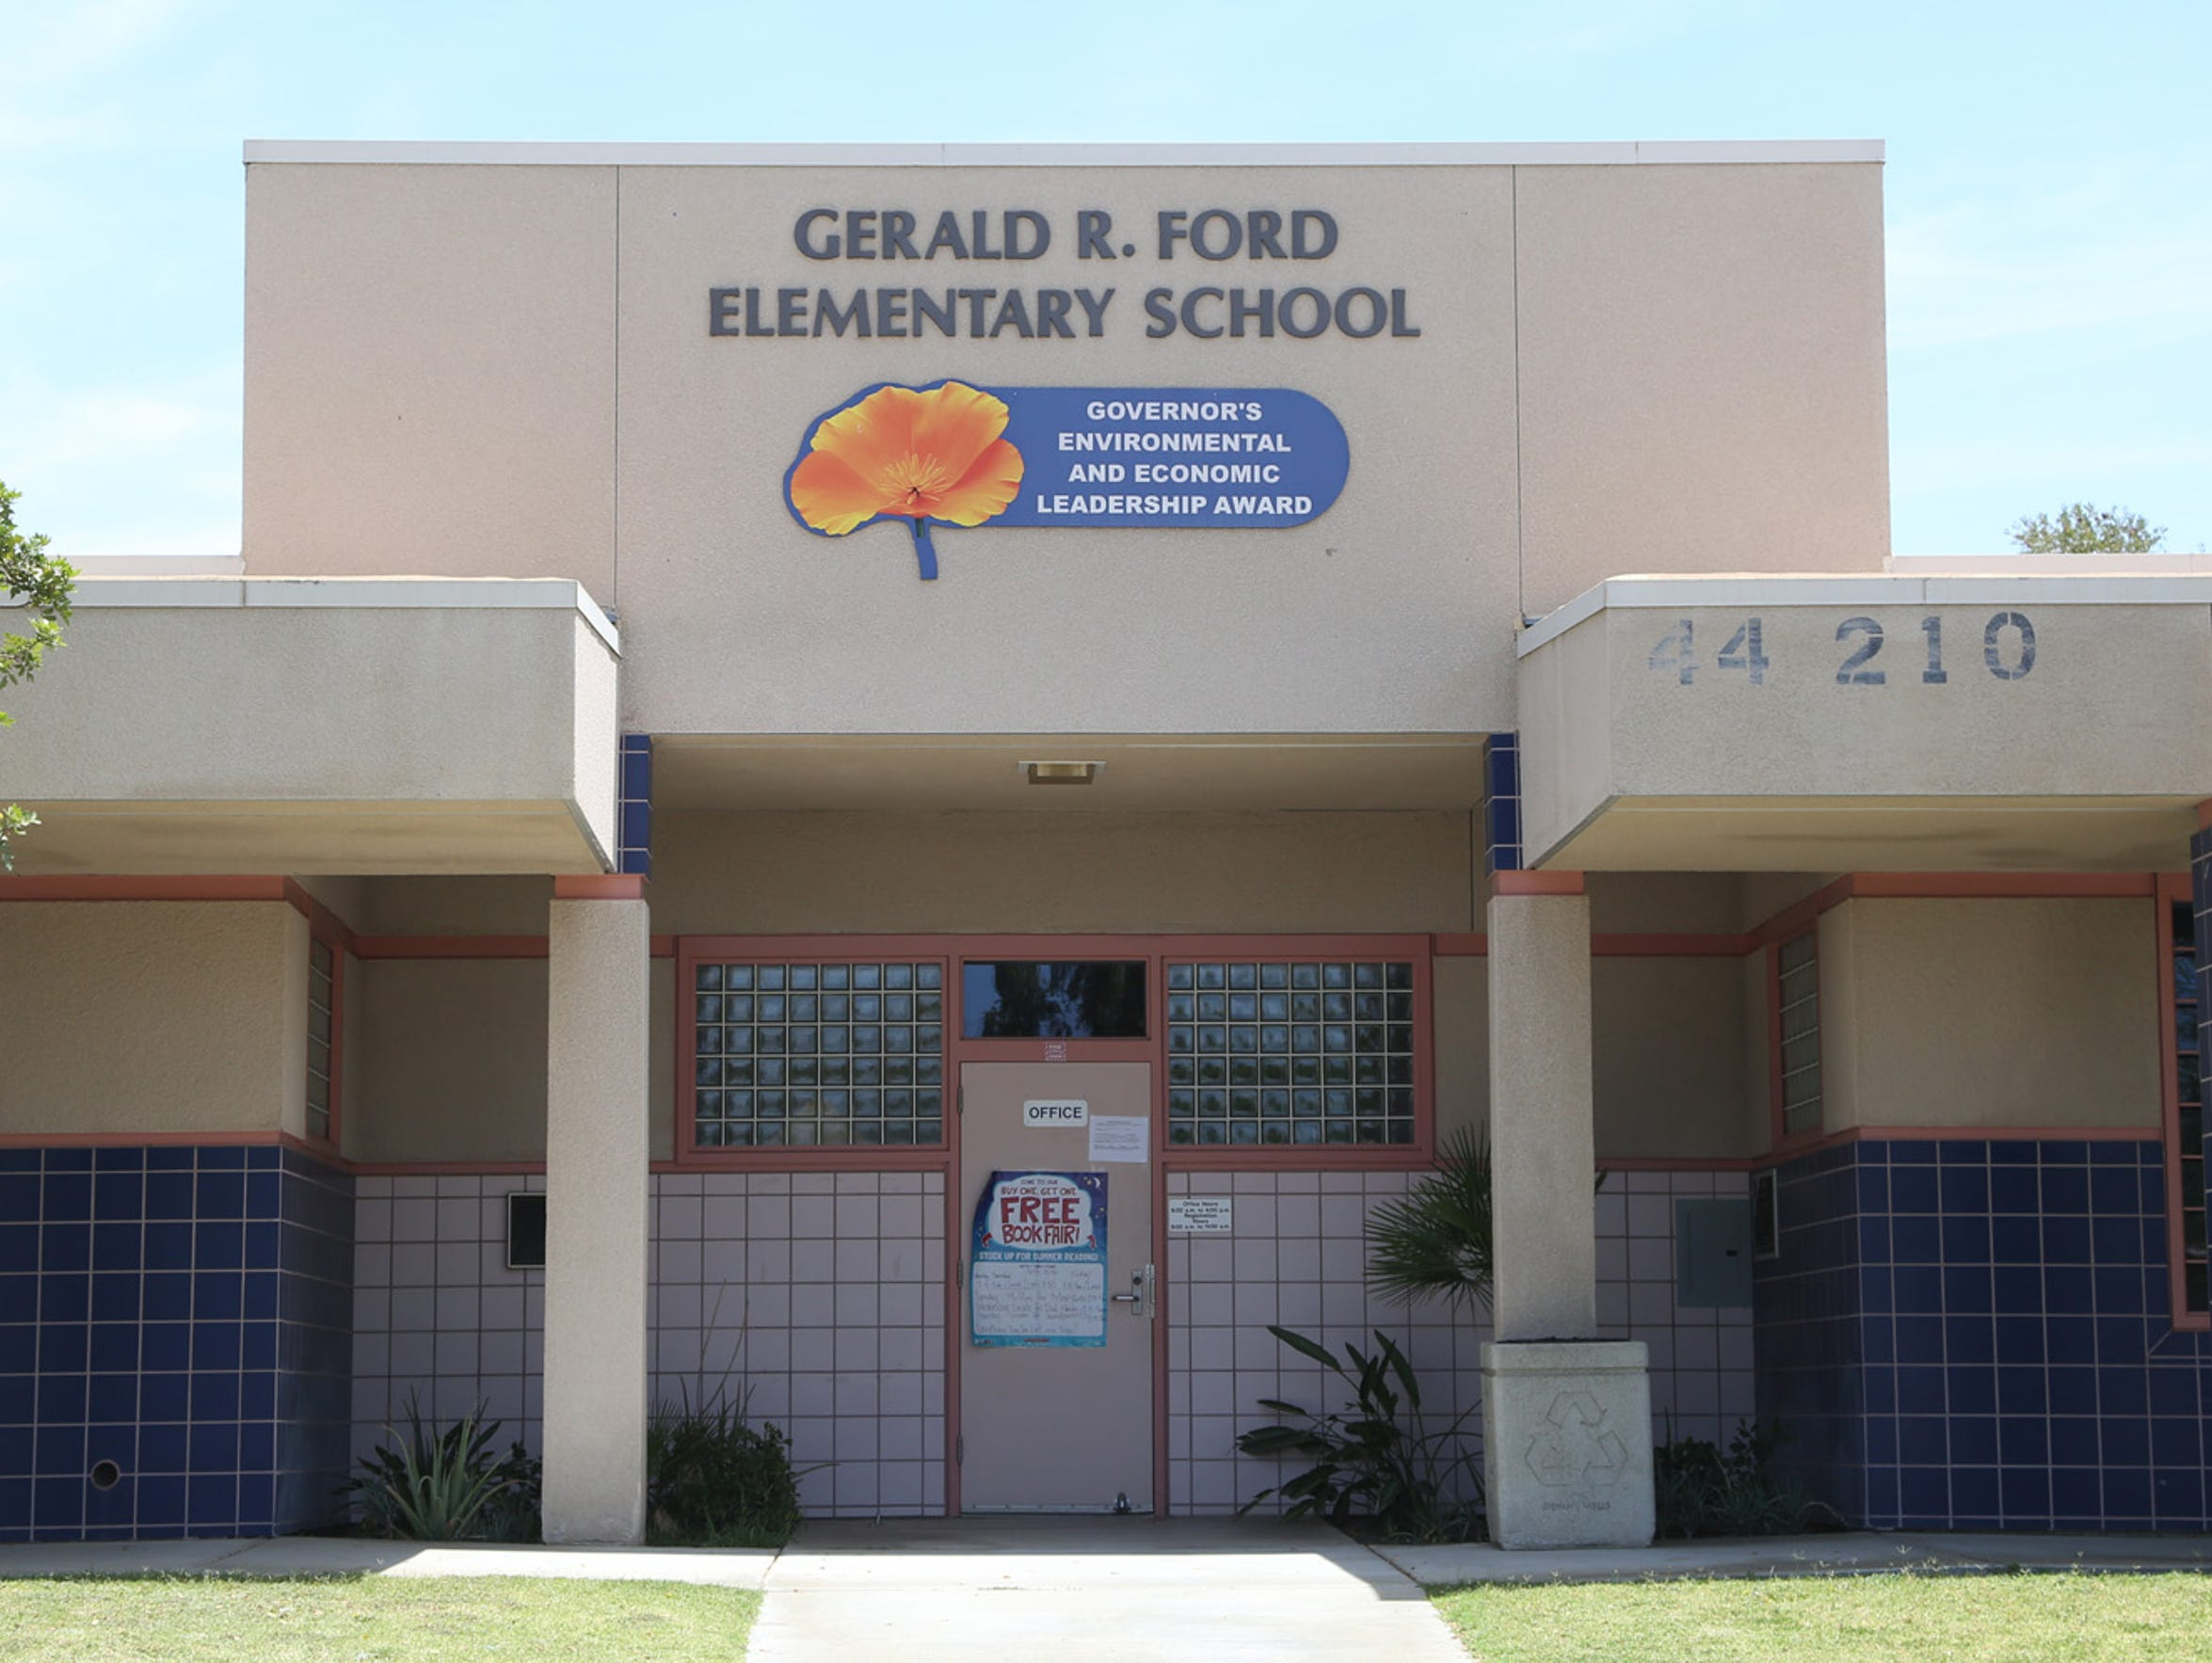 Robert Keith Bryan worked at Gerald Ford Elementary